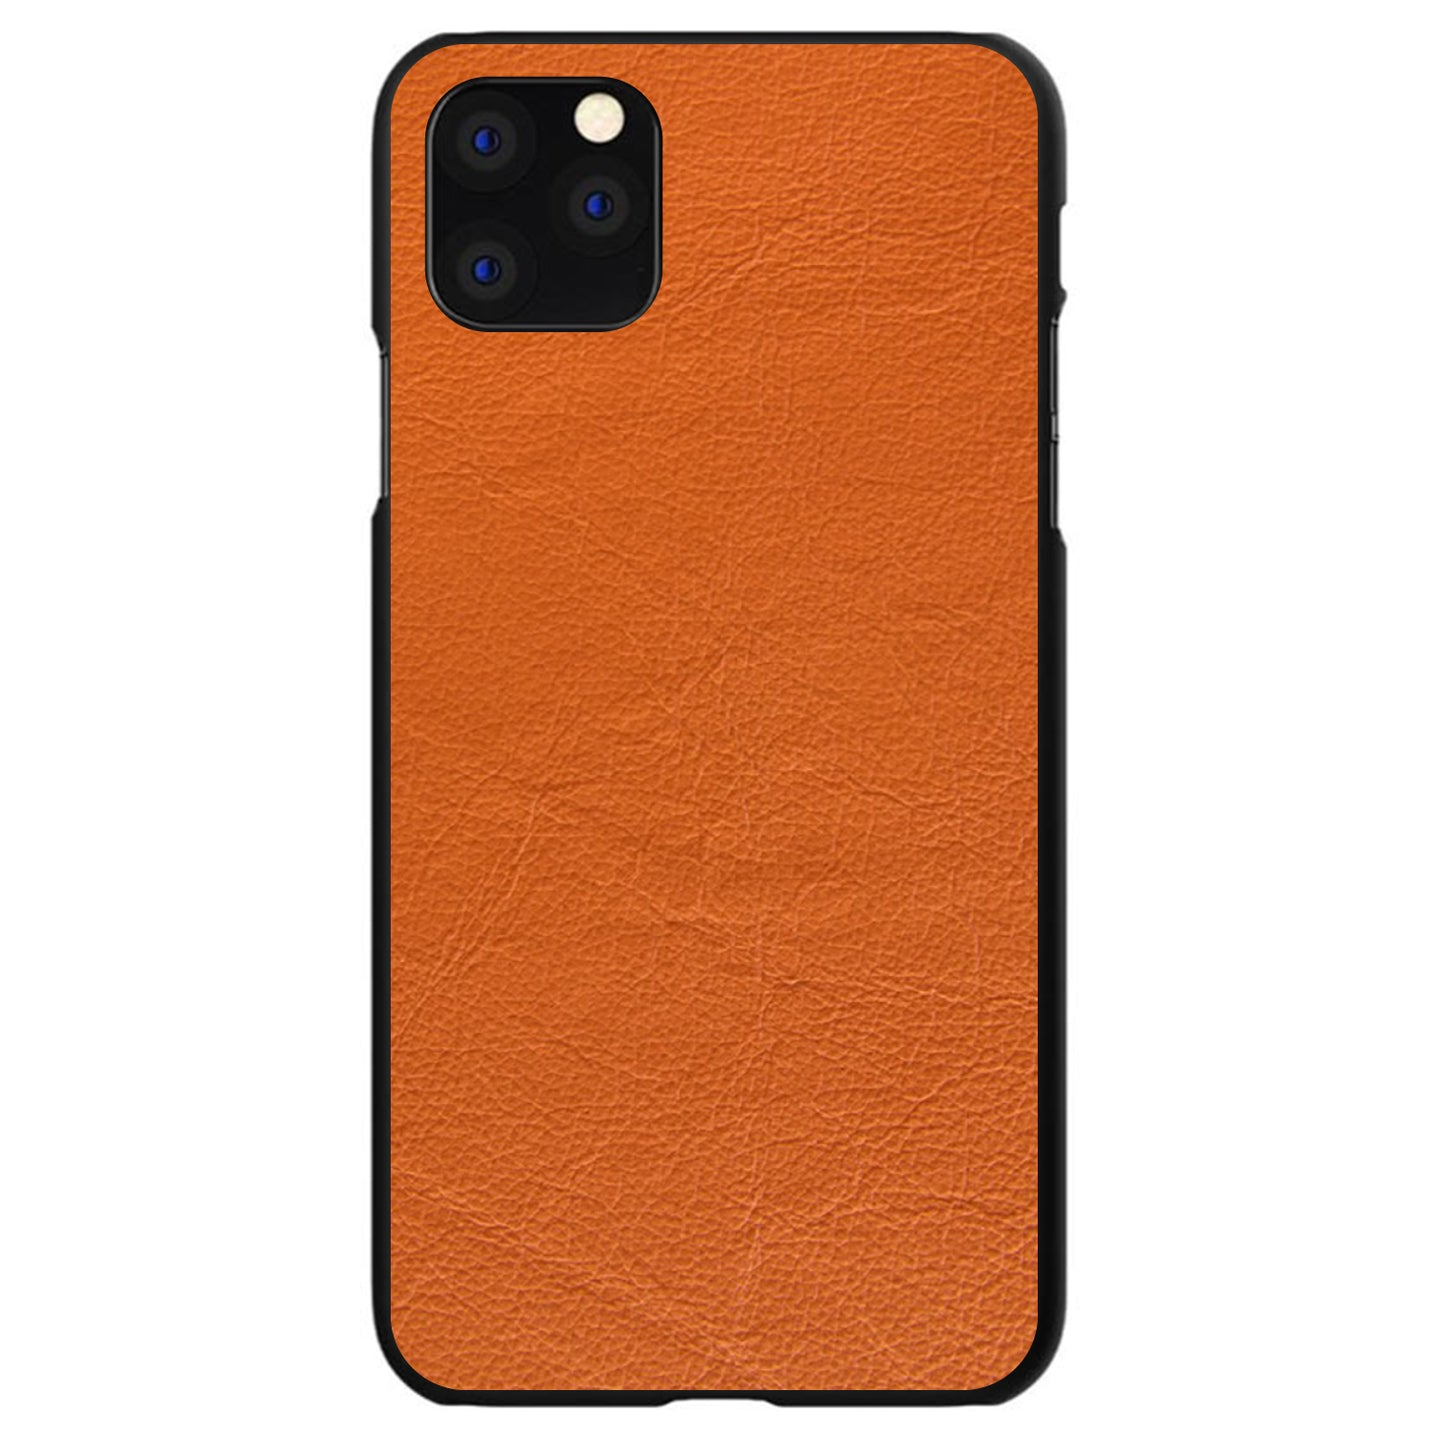 DistinctInk® Hard Plastic Snap-On Case for Apple iPhone - Orange Leather Print Design